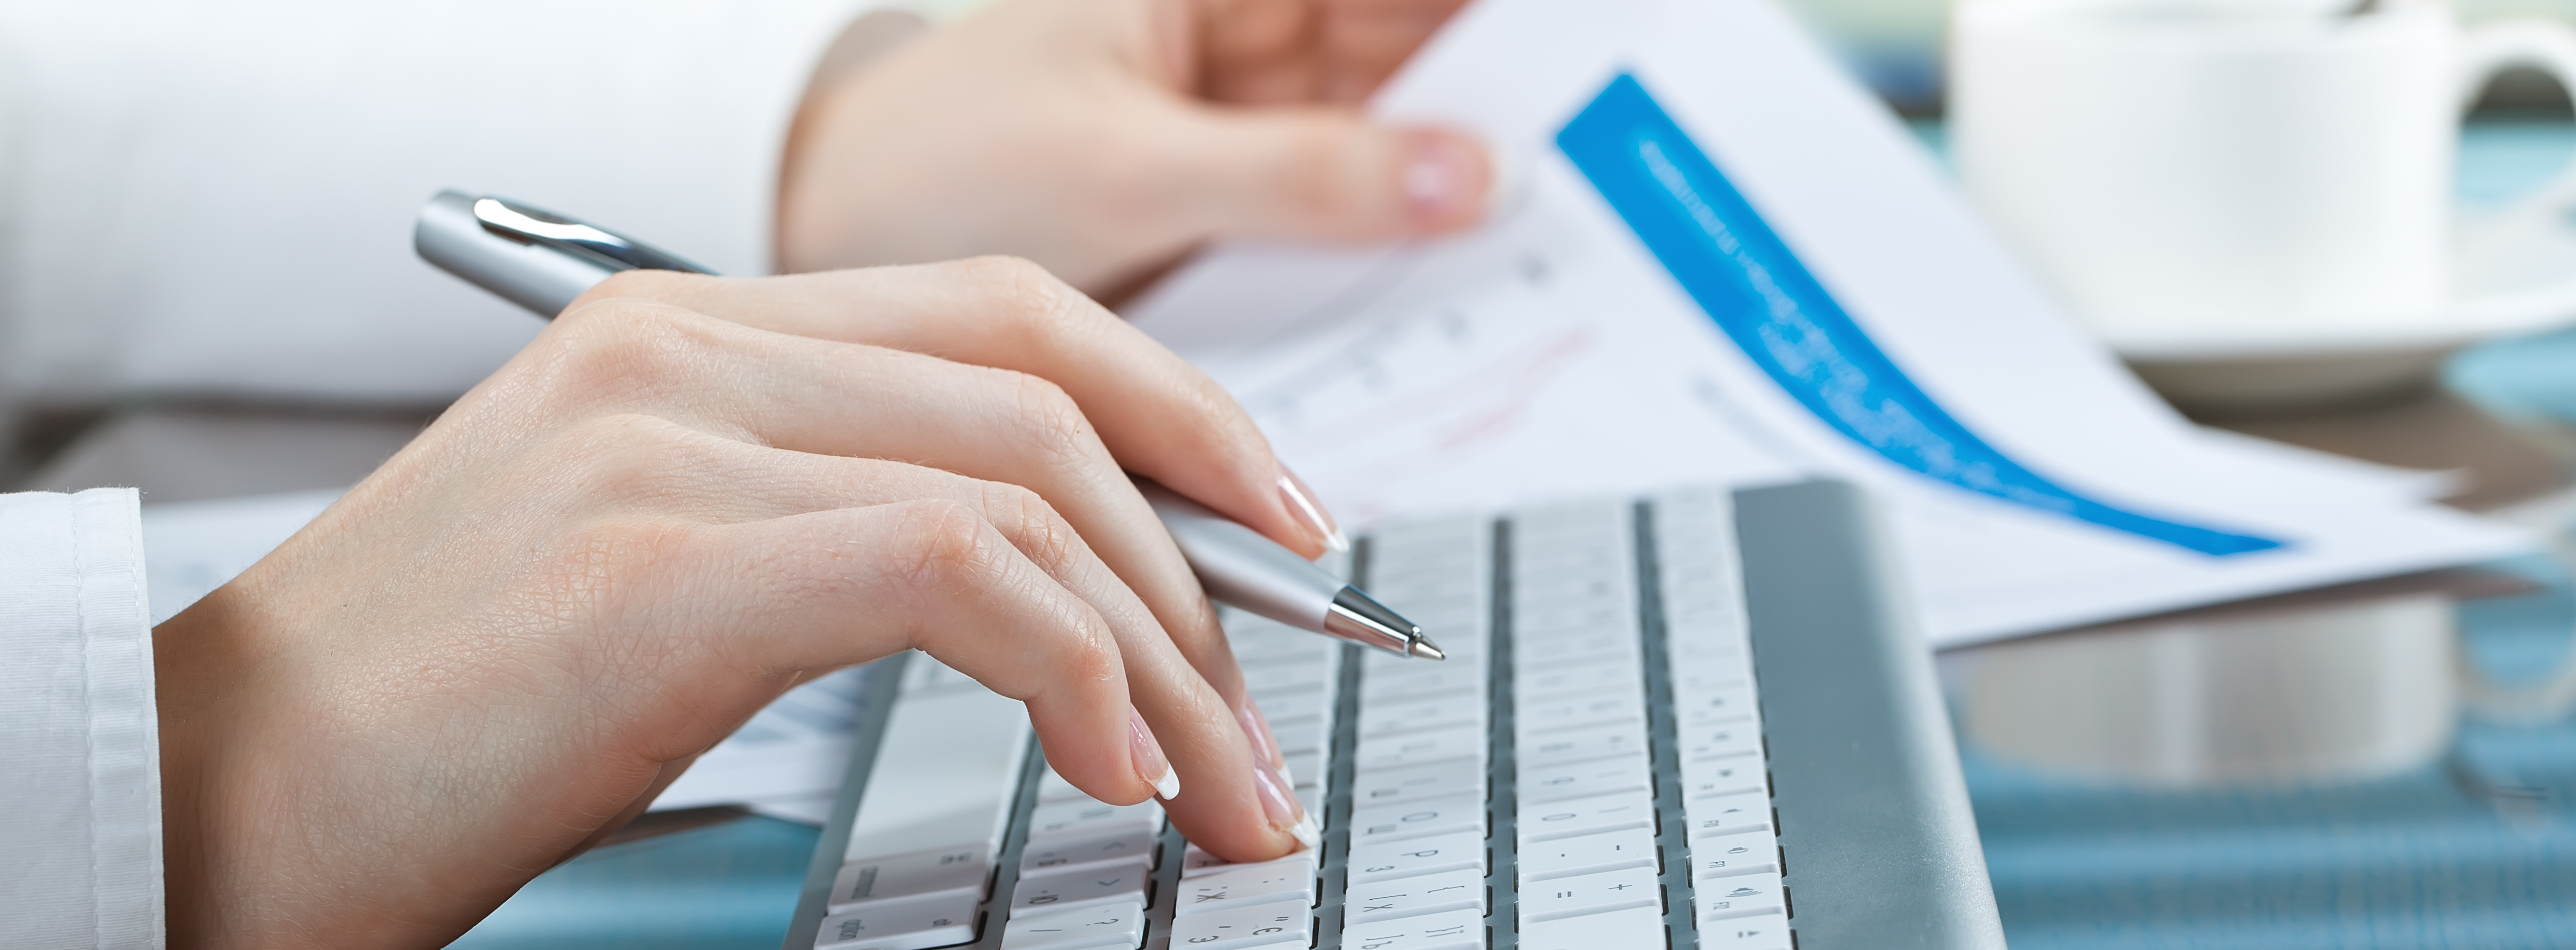 Top Reasons to Consider Small Business Accountancy Services